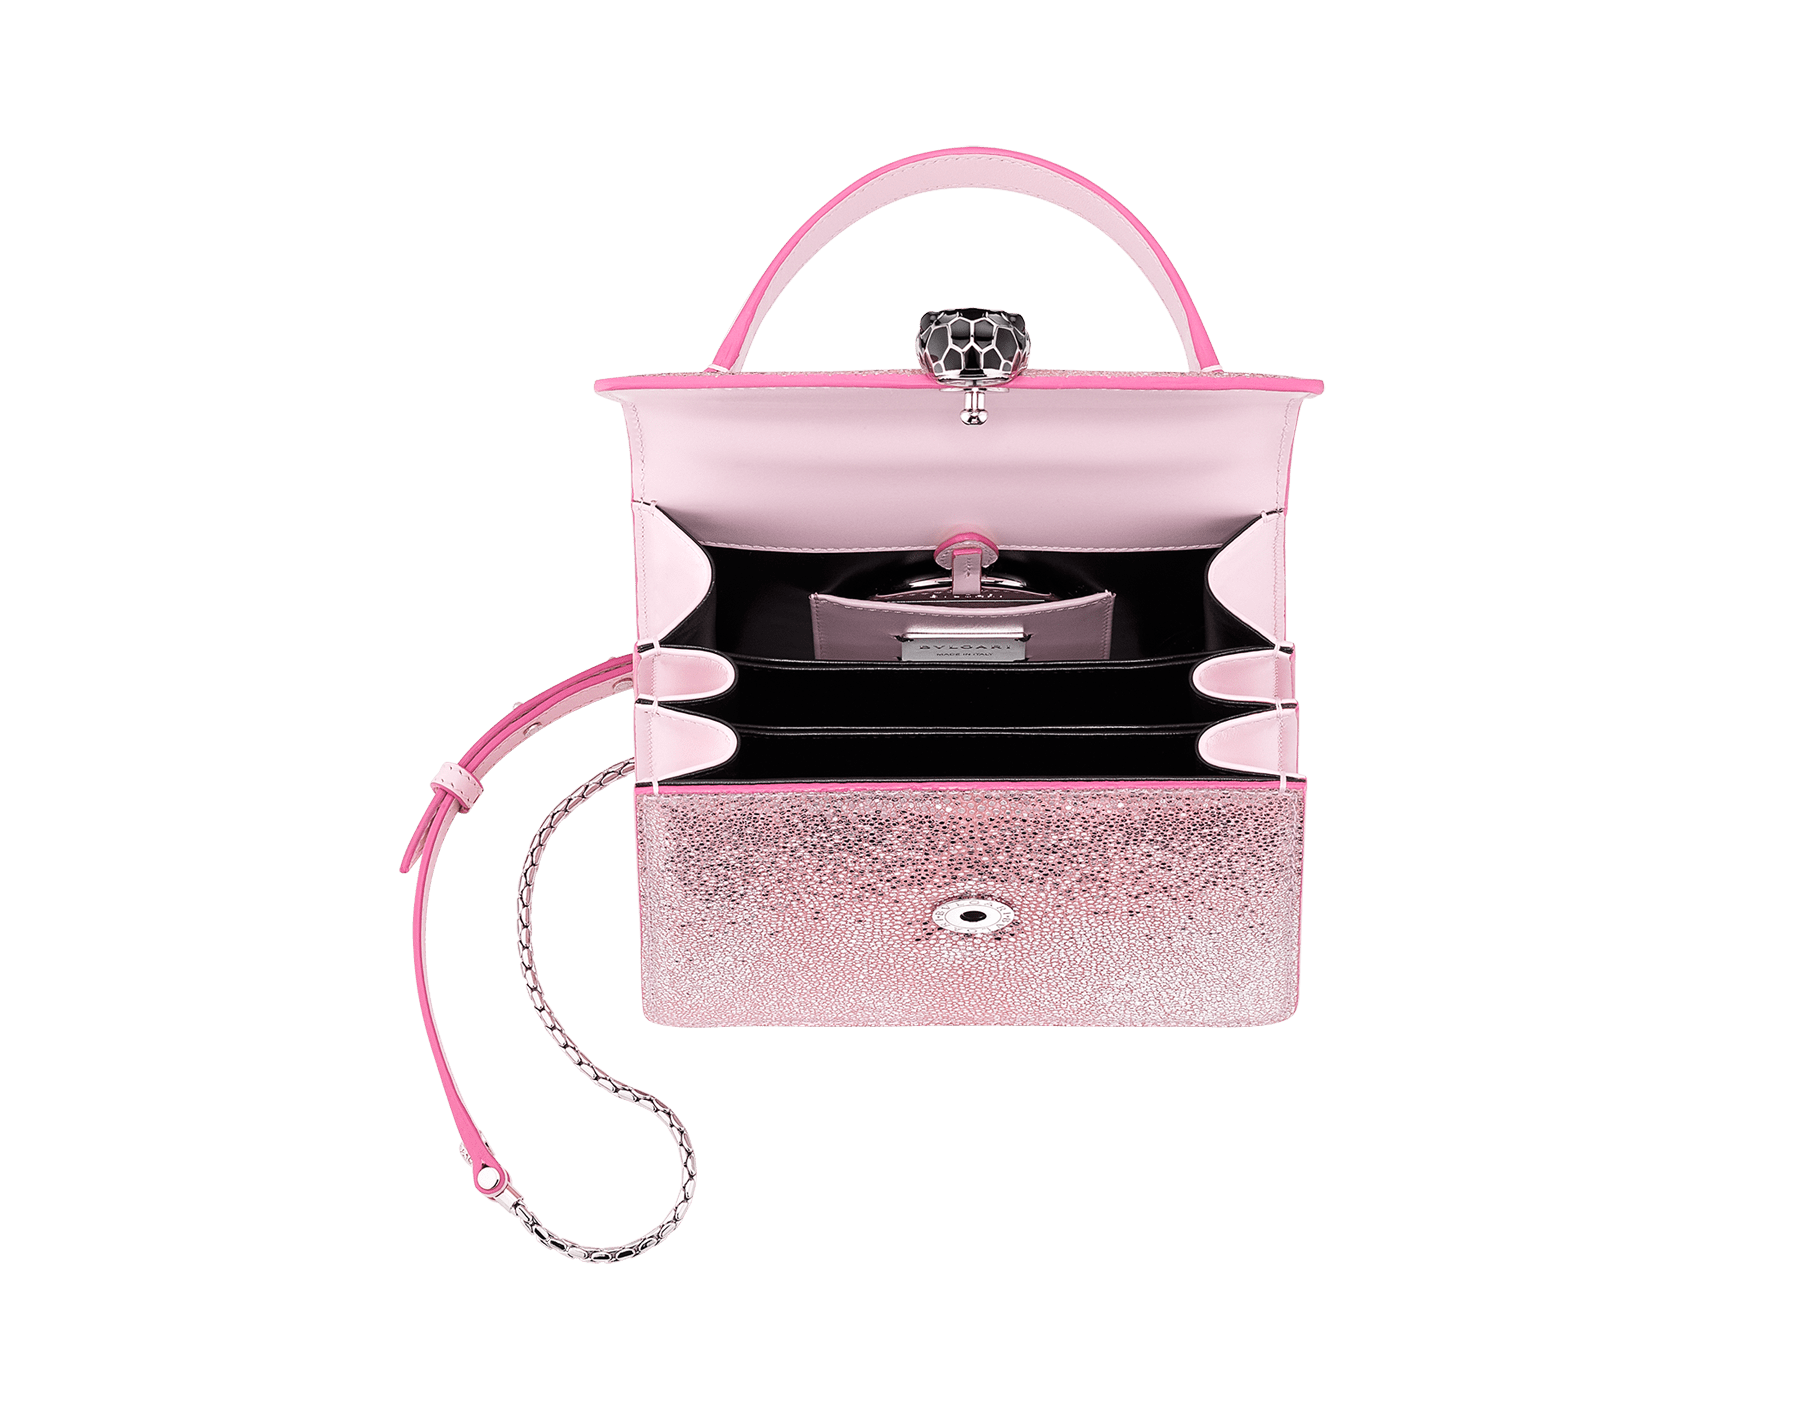 """Serpenti Forever"" crossbody bag in rosa di francia crystal galuchat body and rosa di francia calf leather sides. Iconic snake head closure in palladium-plated brass enriched with black enamel and black onyx eyes. 289459 image 4"